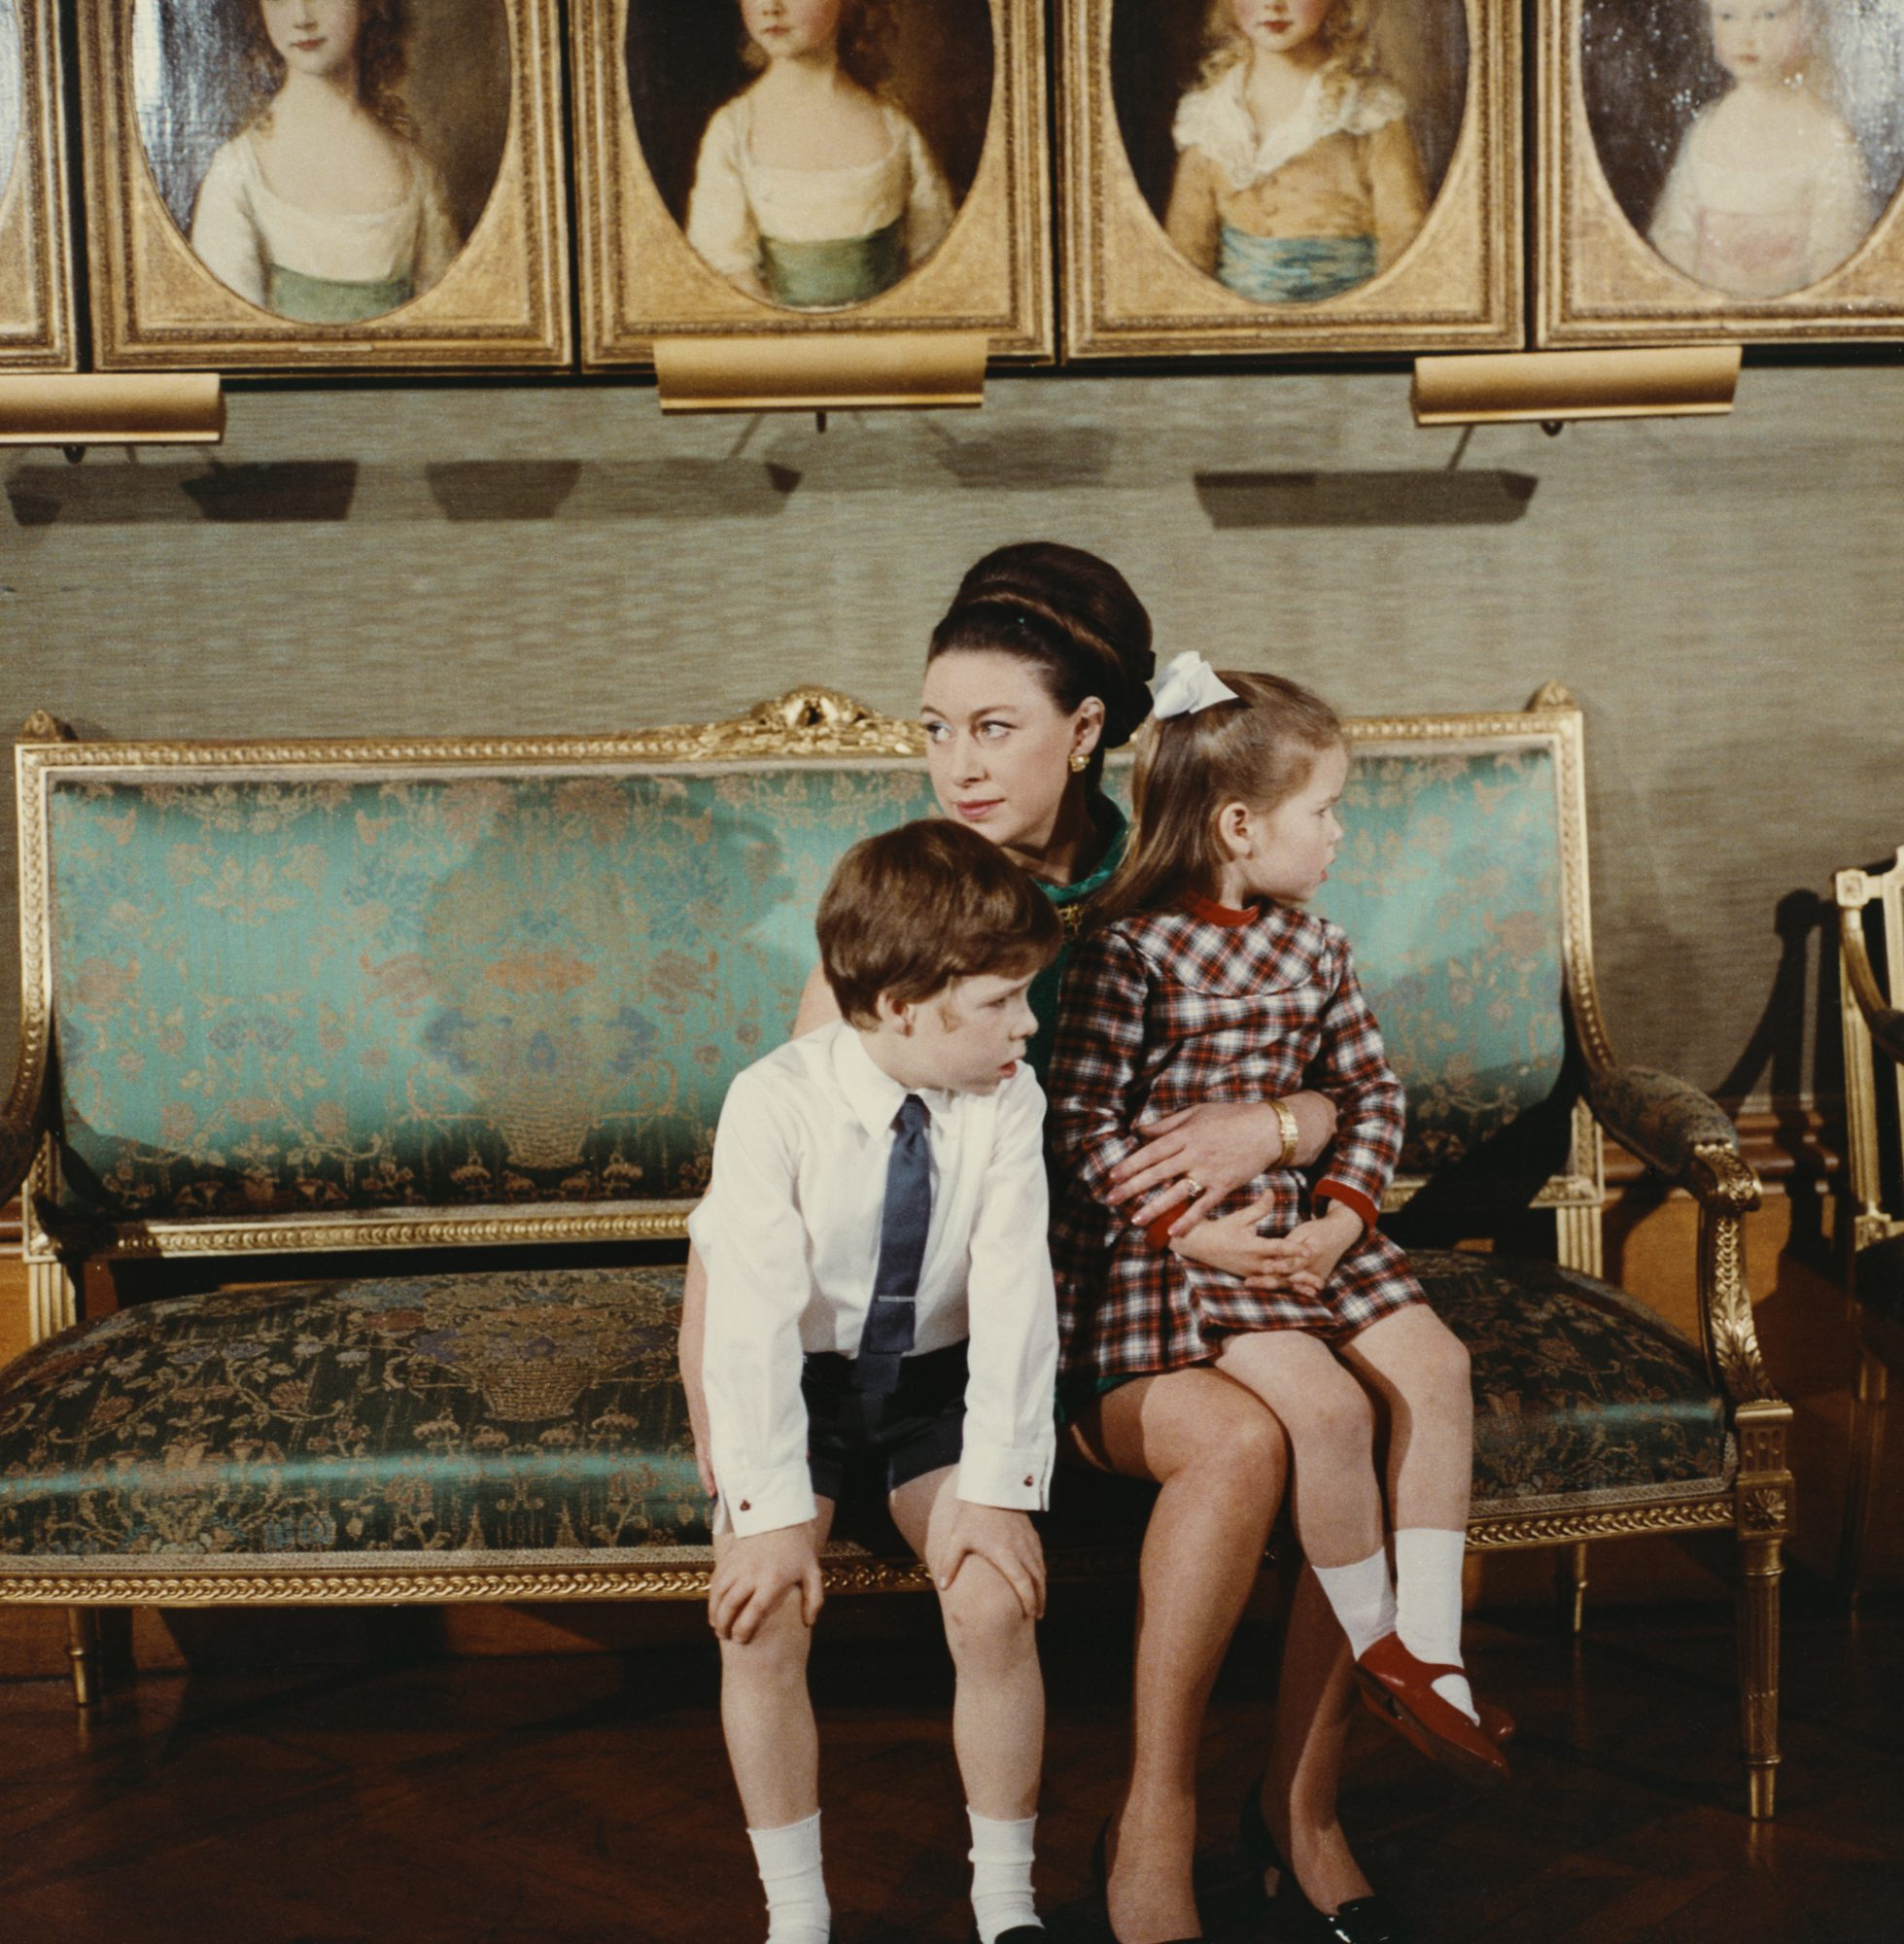 Members of the British Royal Family, Princess Margaret, Countess of Snowdon (1930-2002) pictured holding her children, David Armstrong-Jones, Viscount Linley and Lady Sarah Armstrong-Jones on her knees during filming of the television documentary 'Royal Family' in London in 1969. The documentary would be first broadcast to the nation's television viewers on 21st June 1969. (Photo by Rolls Press/Popperfoto/Getty Images)